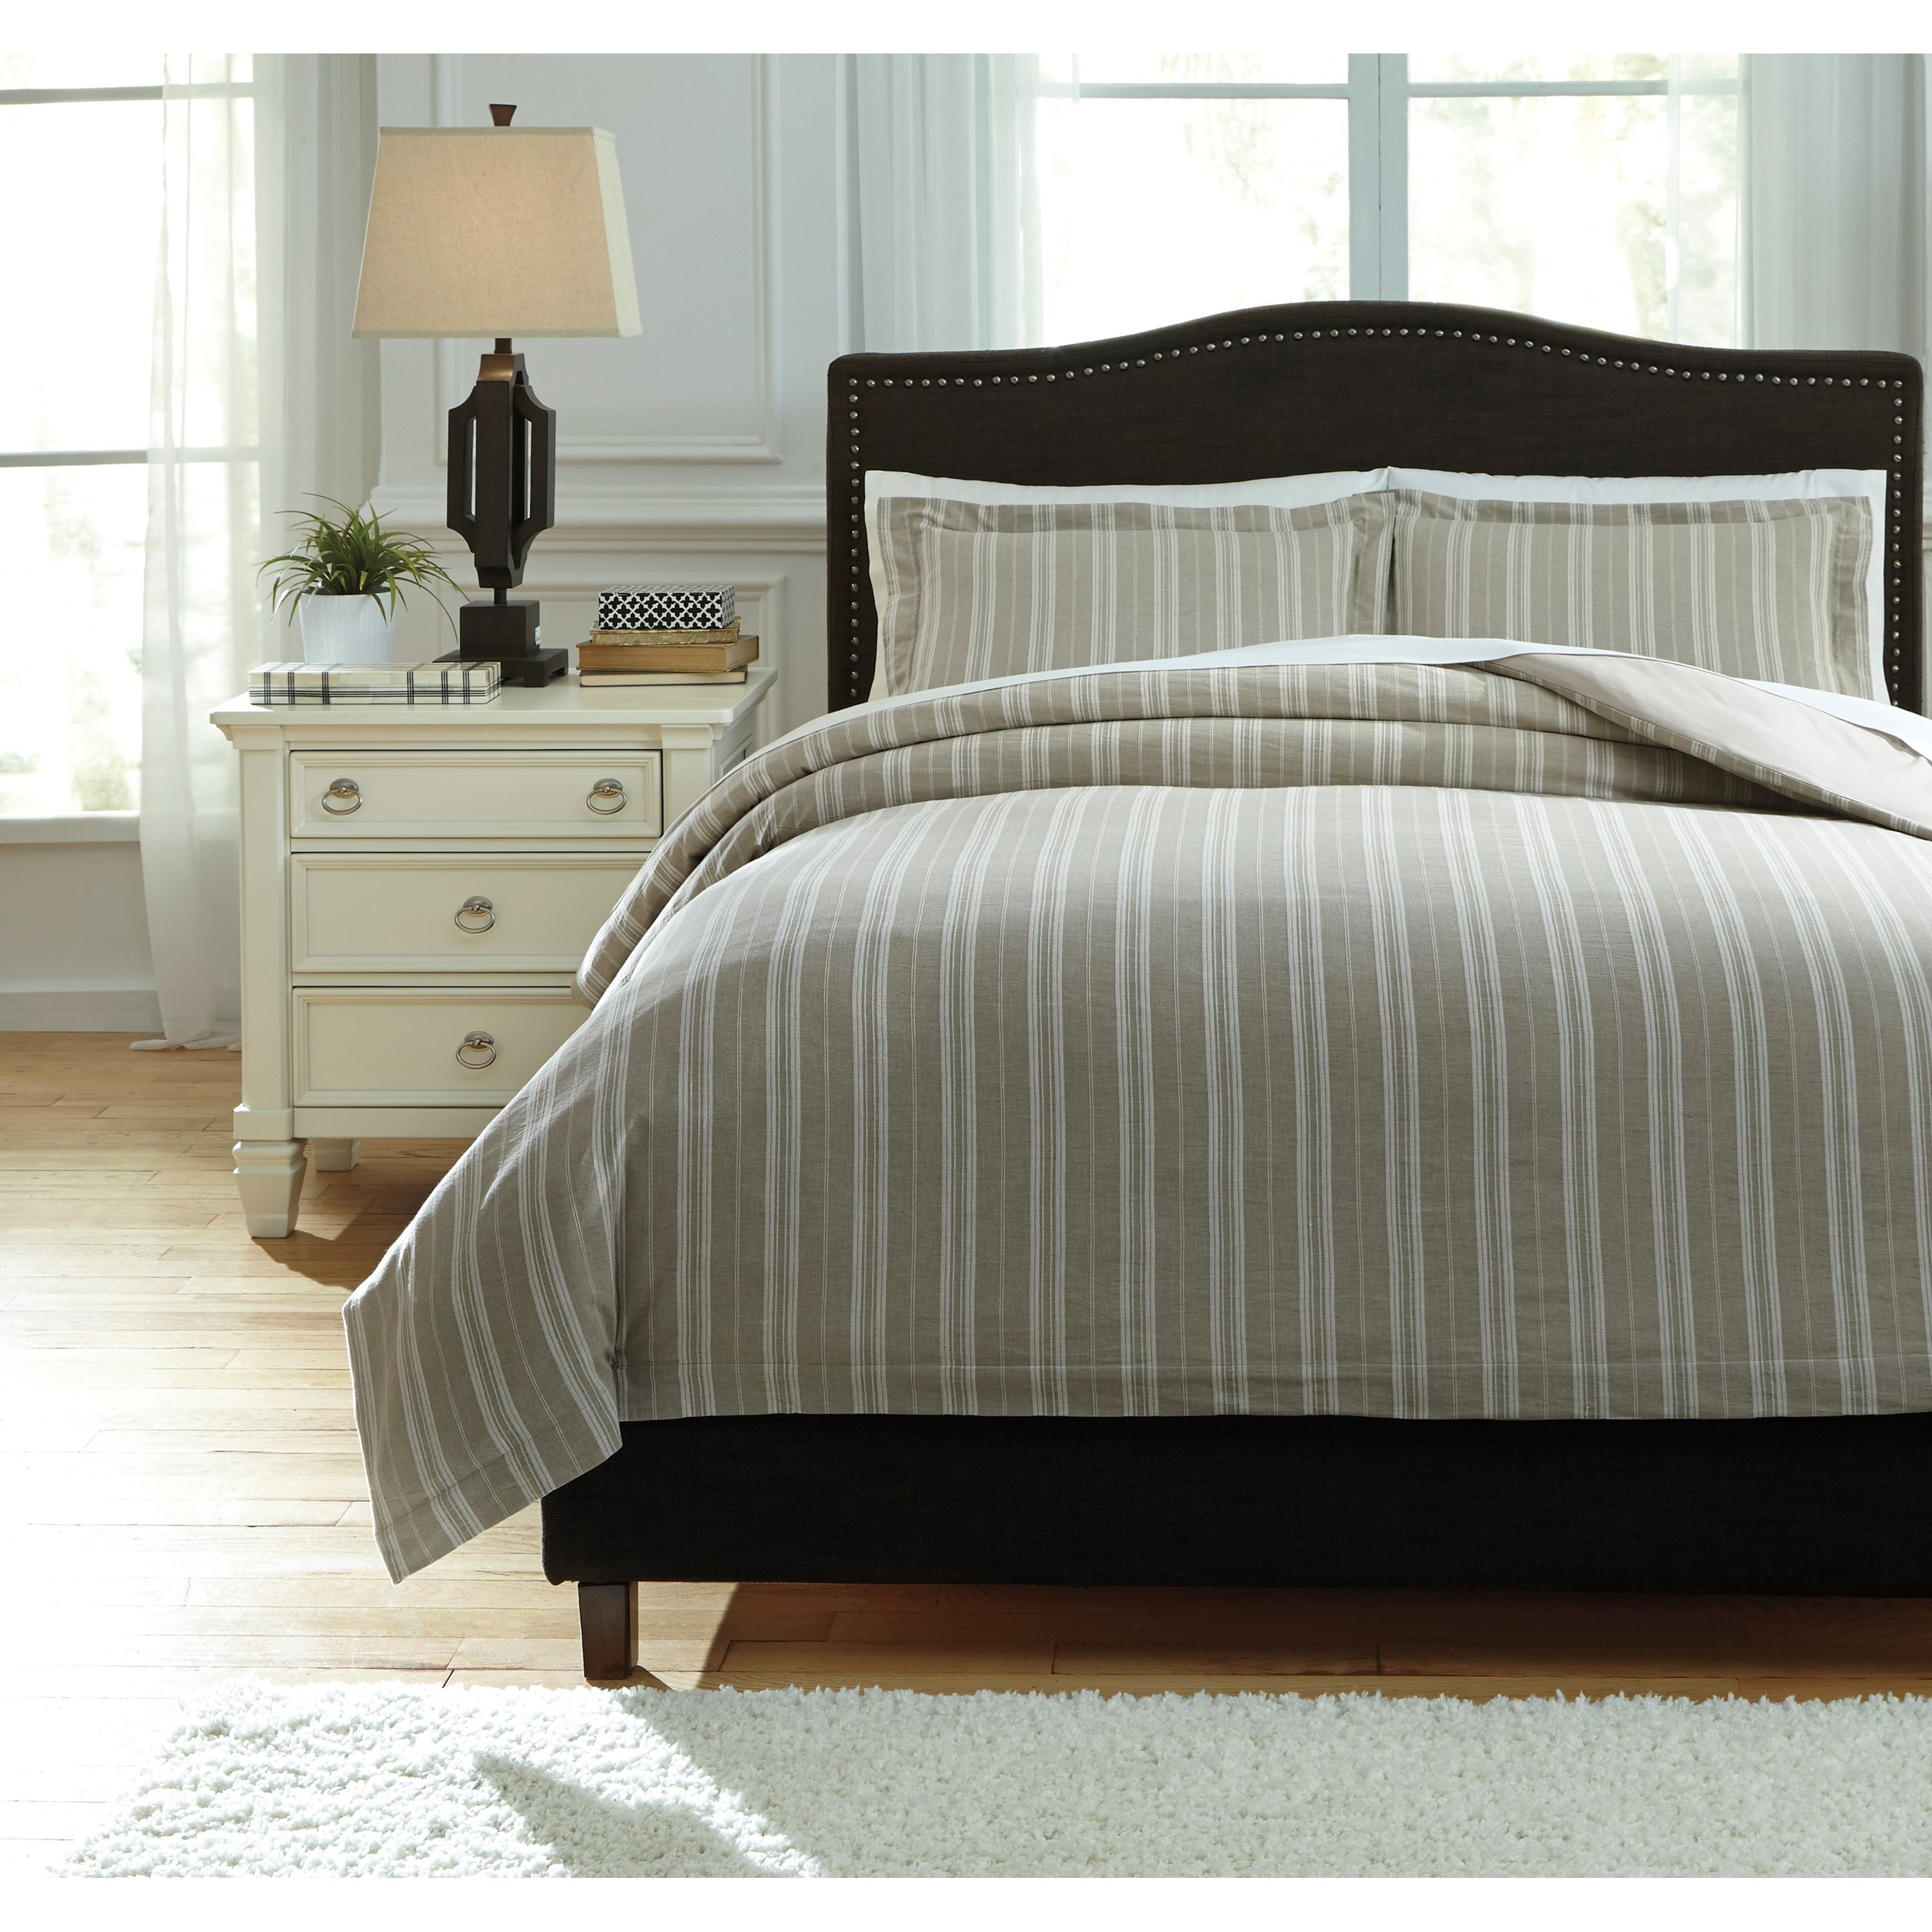 Signature Design by Ashley Bedding Sets Queen Navarre White/Natural Duvet Cover Set - Item Number: Q745023Q